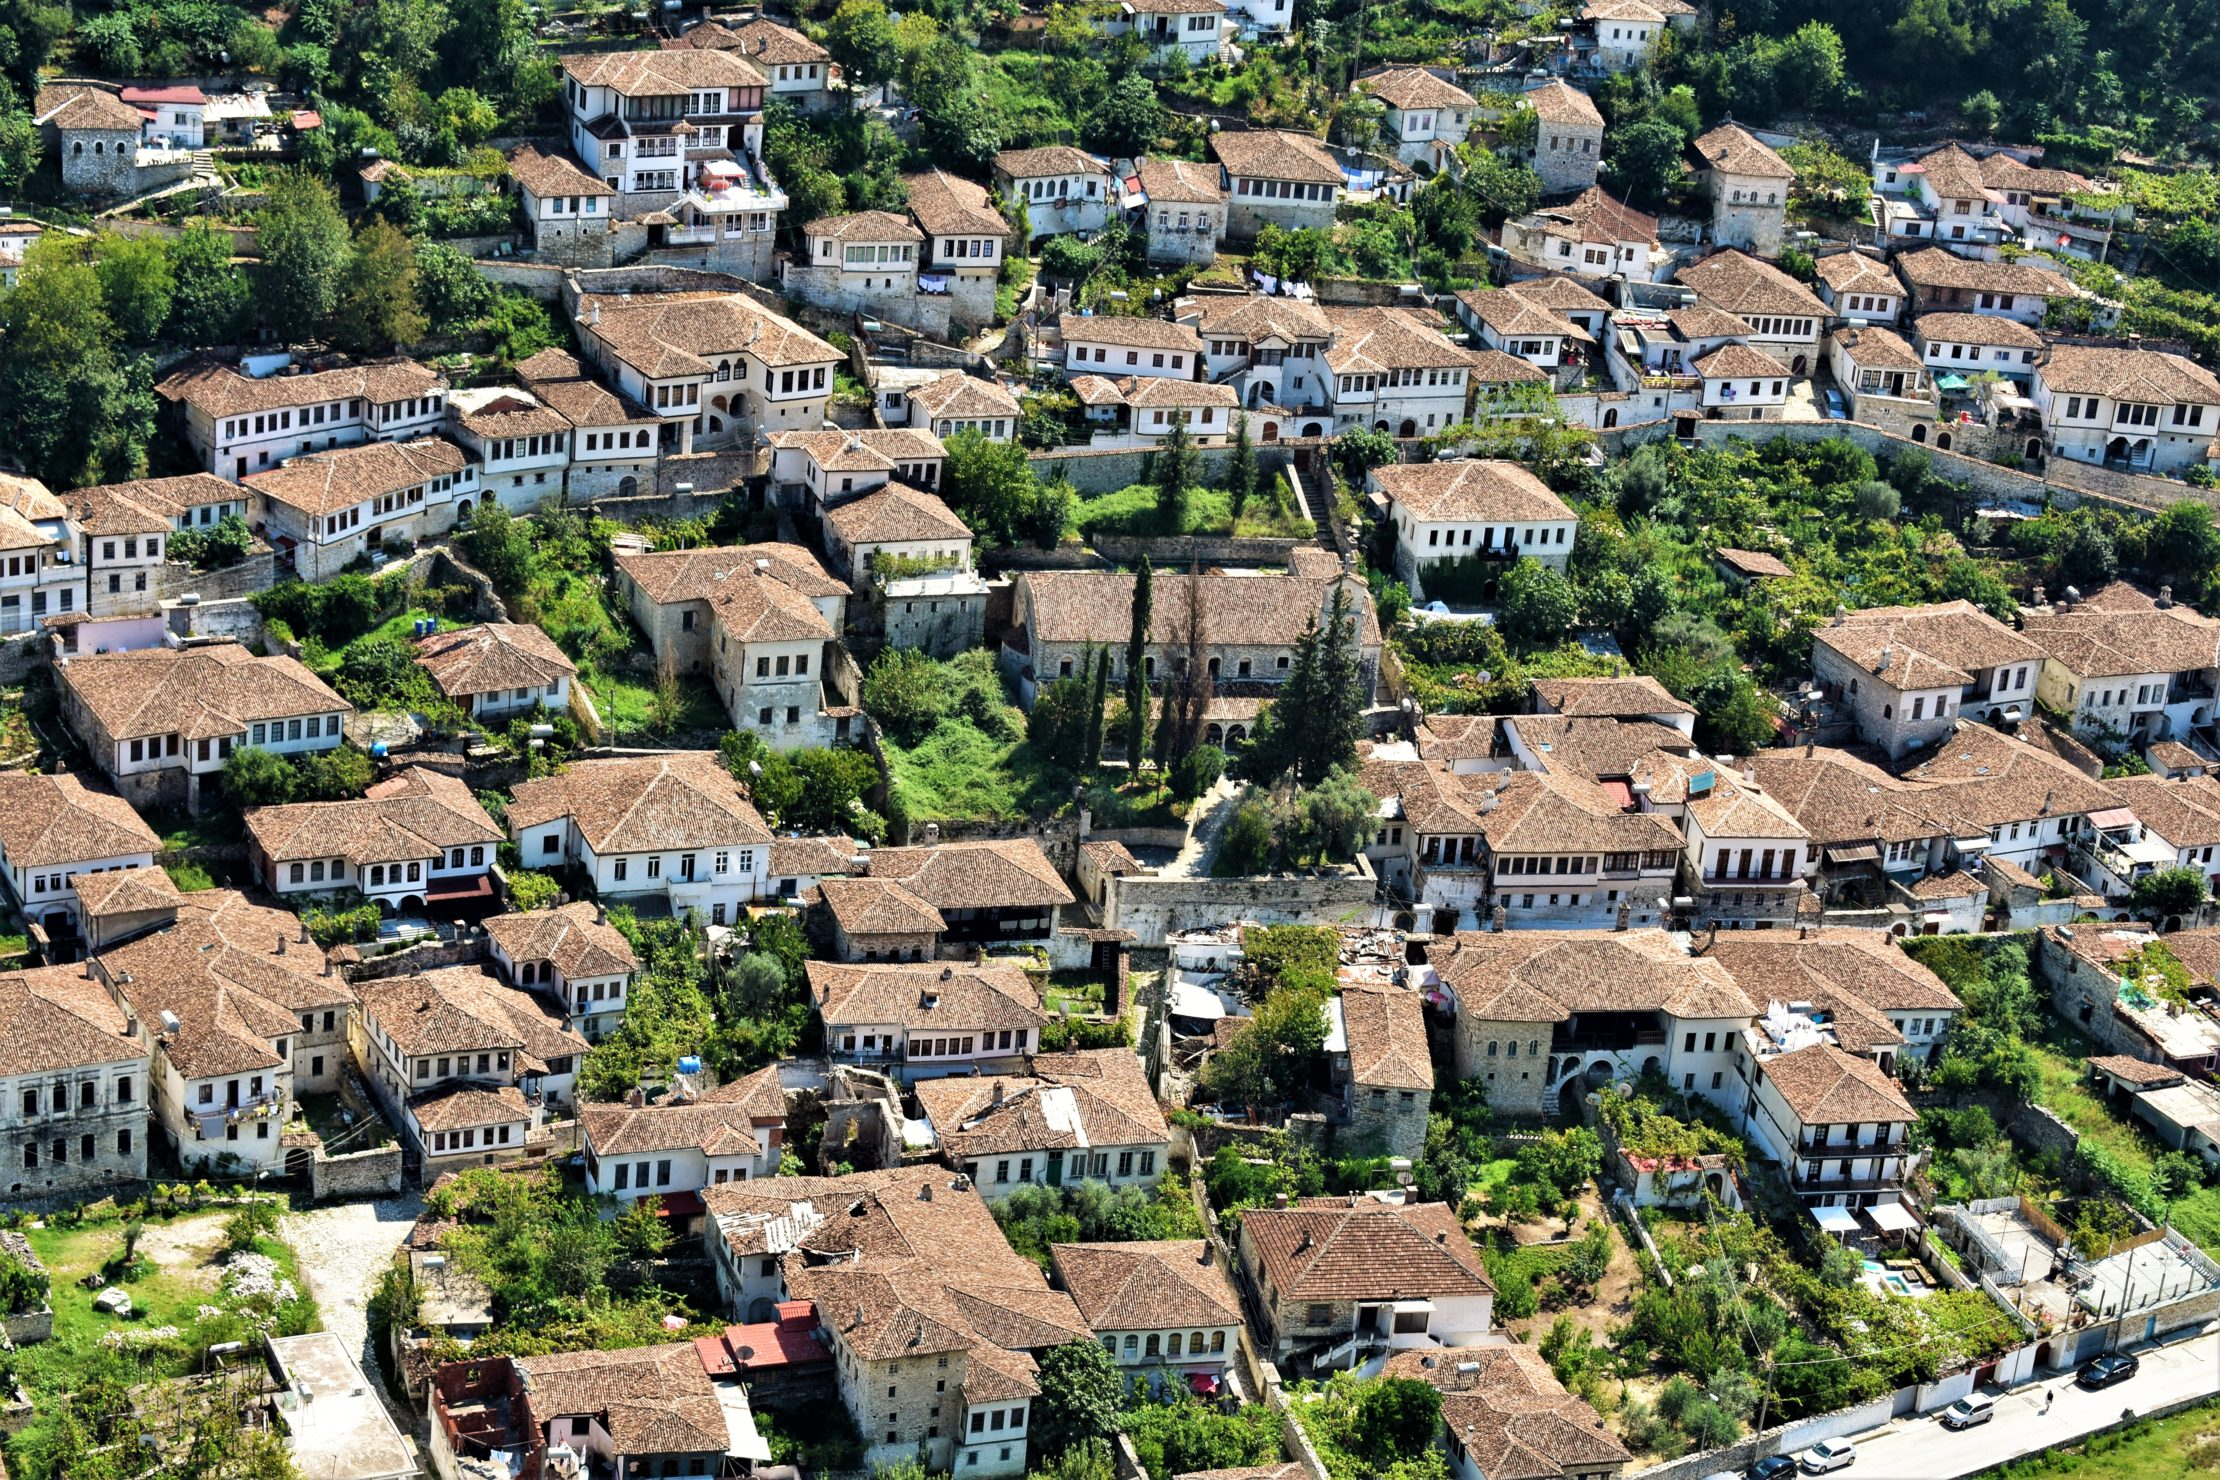 Guide to Berat Albania - What to see in Berat